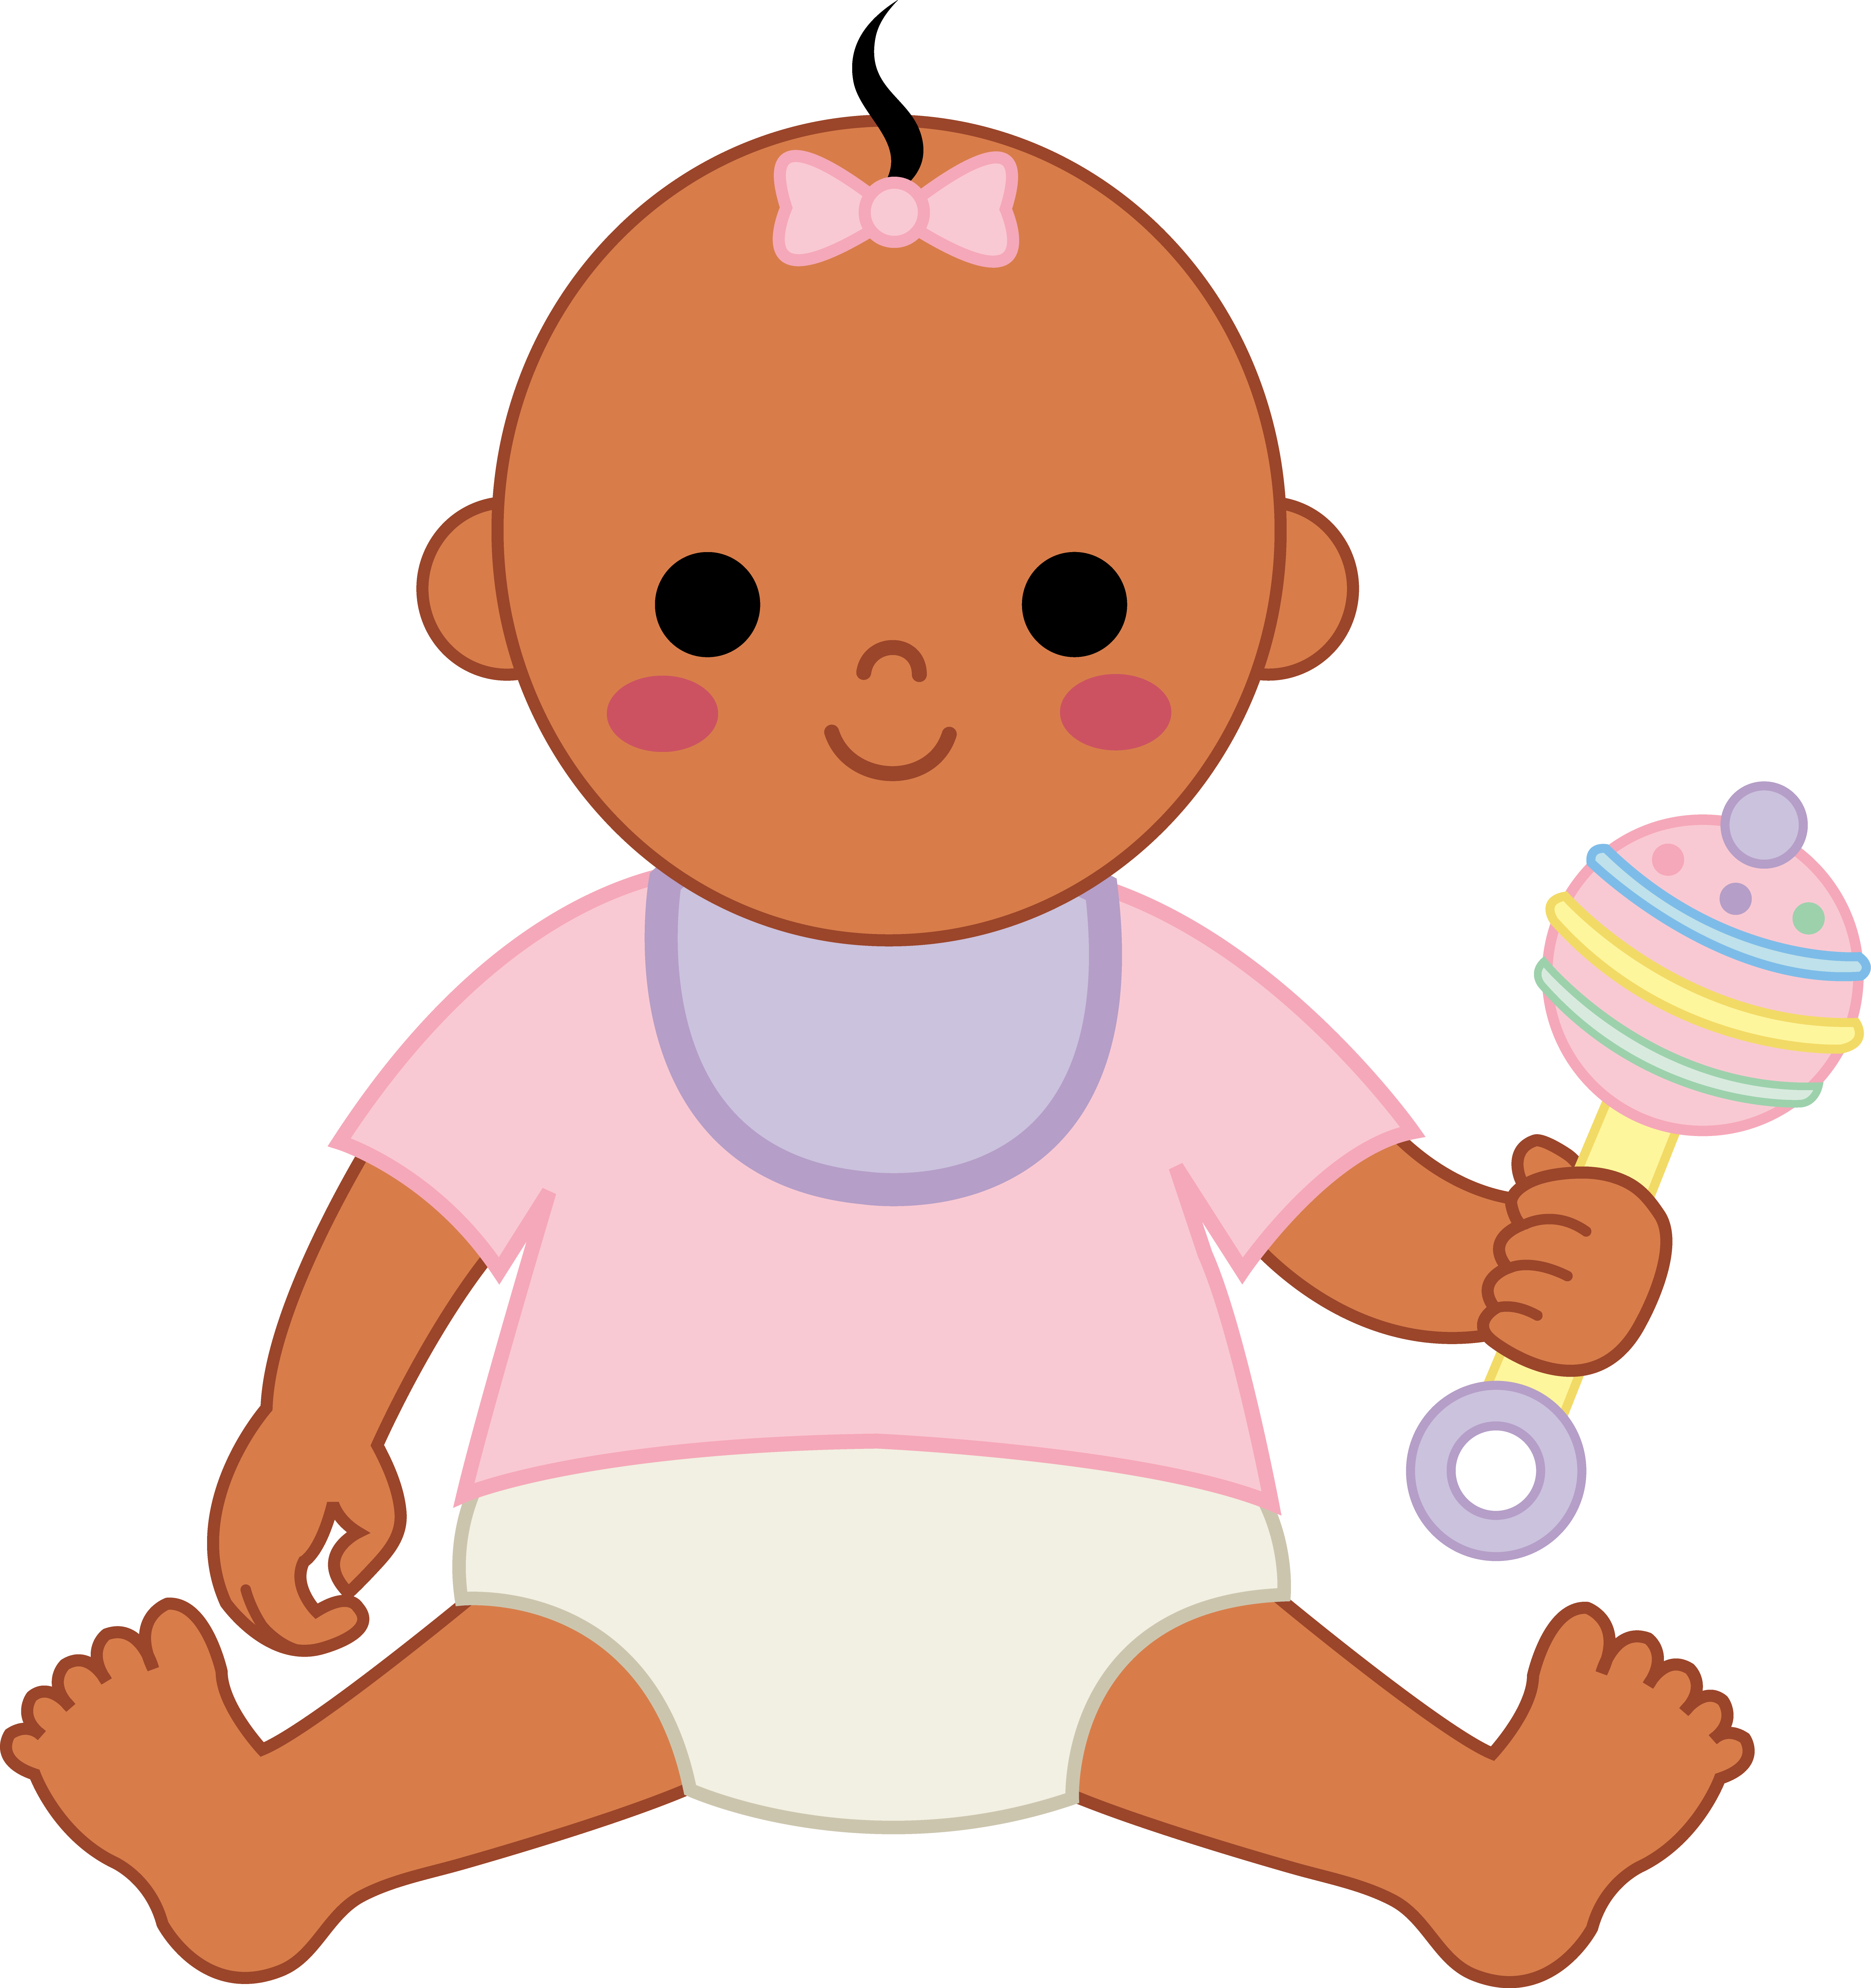 baby girl 2 free clip art clipart panda free clipart images rh clipartpanda com free clipart of baby animals free clipart of babies feet